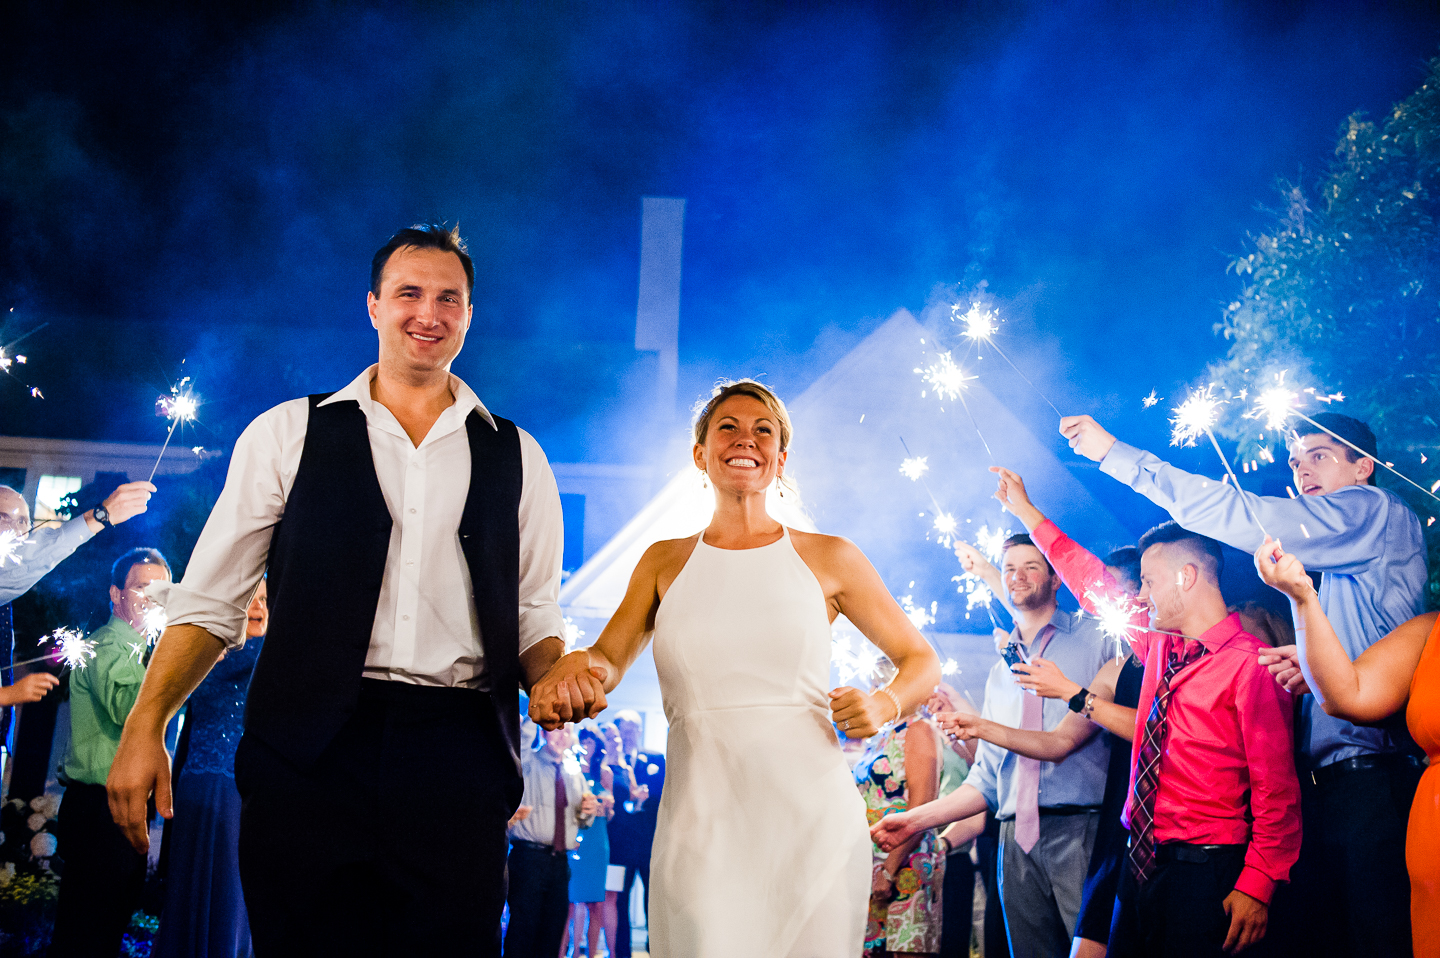 bride and groom happily run down the aisle of sparklers during their send off